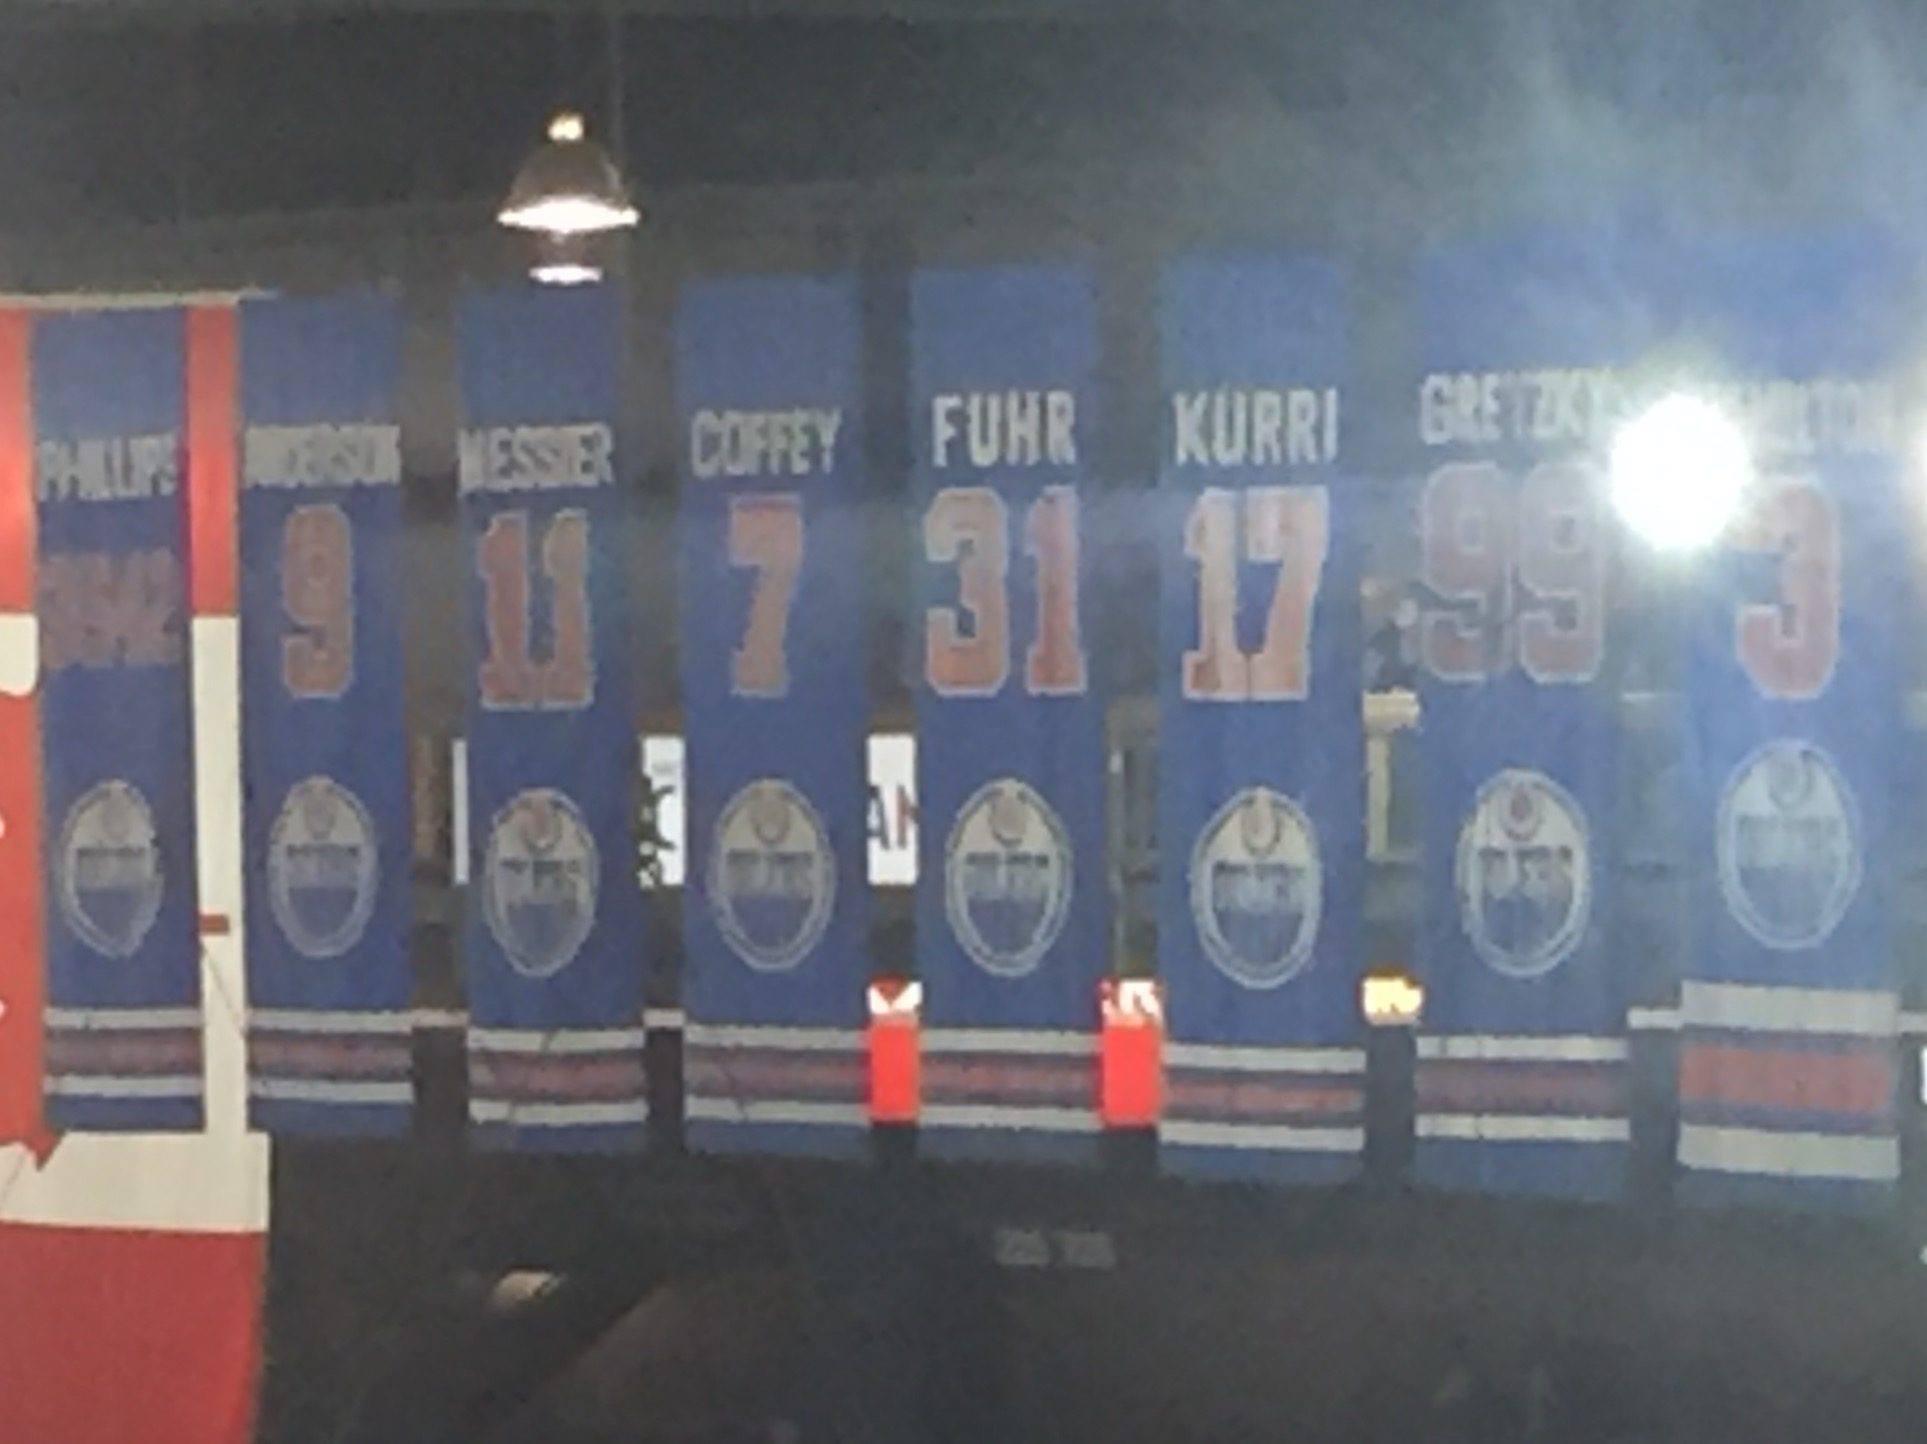 Edmonton's retired numbers for broadcaster Rod Phillips, Anderson, Messier, Coffey, Fuhr, Kurri, Gretzky and Al Hamilton. (Mike Harrington/Buffalo News).